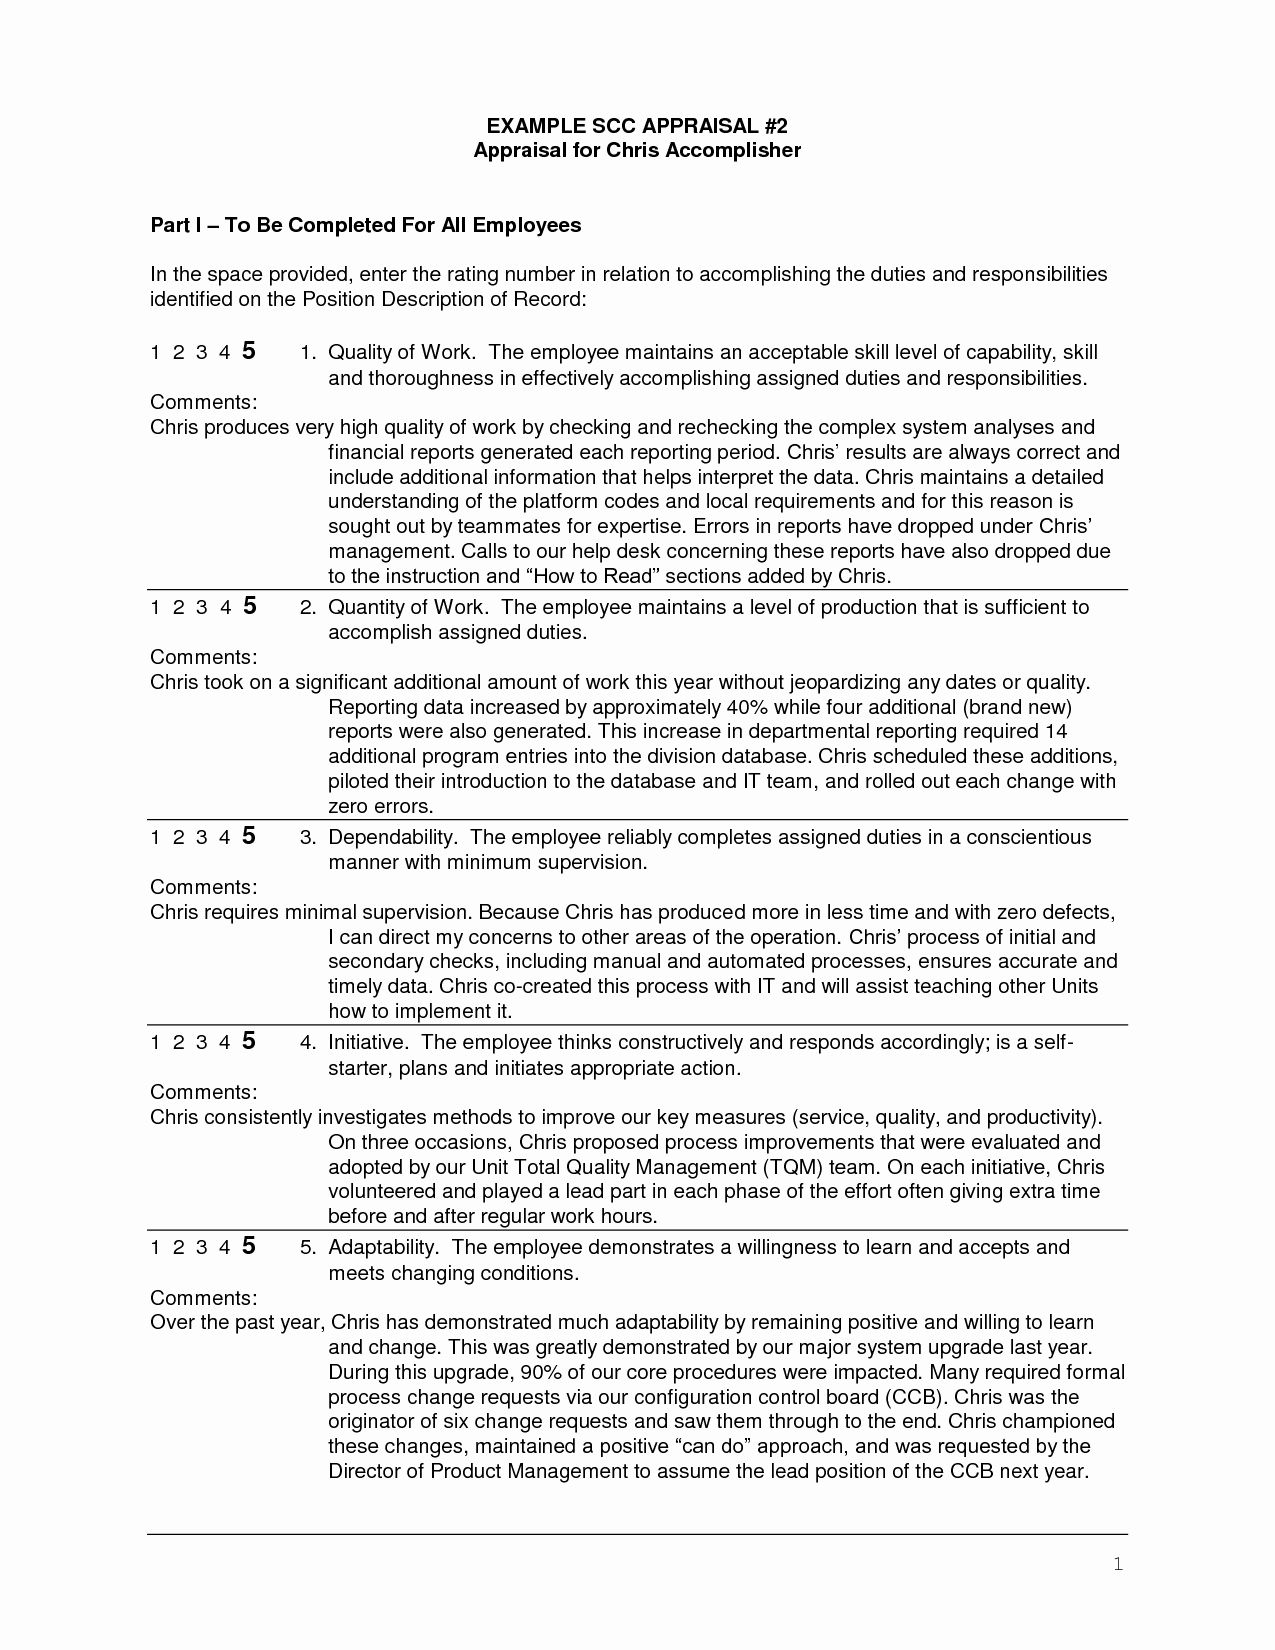 Evaluation Letter Sample For Employee Inspirational Sample Employee Evaluation Written Self Evaluation Employee Employee Performance Review Evaluation Employee